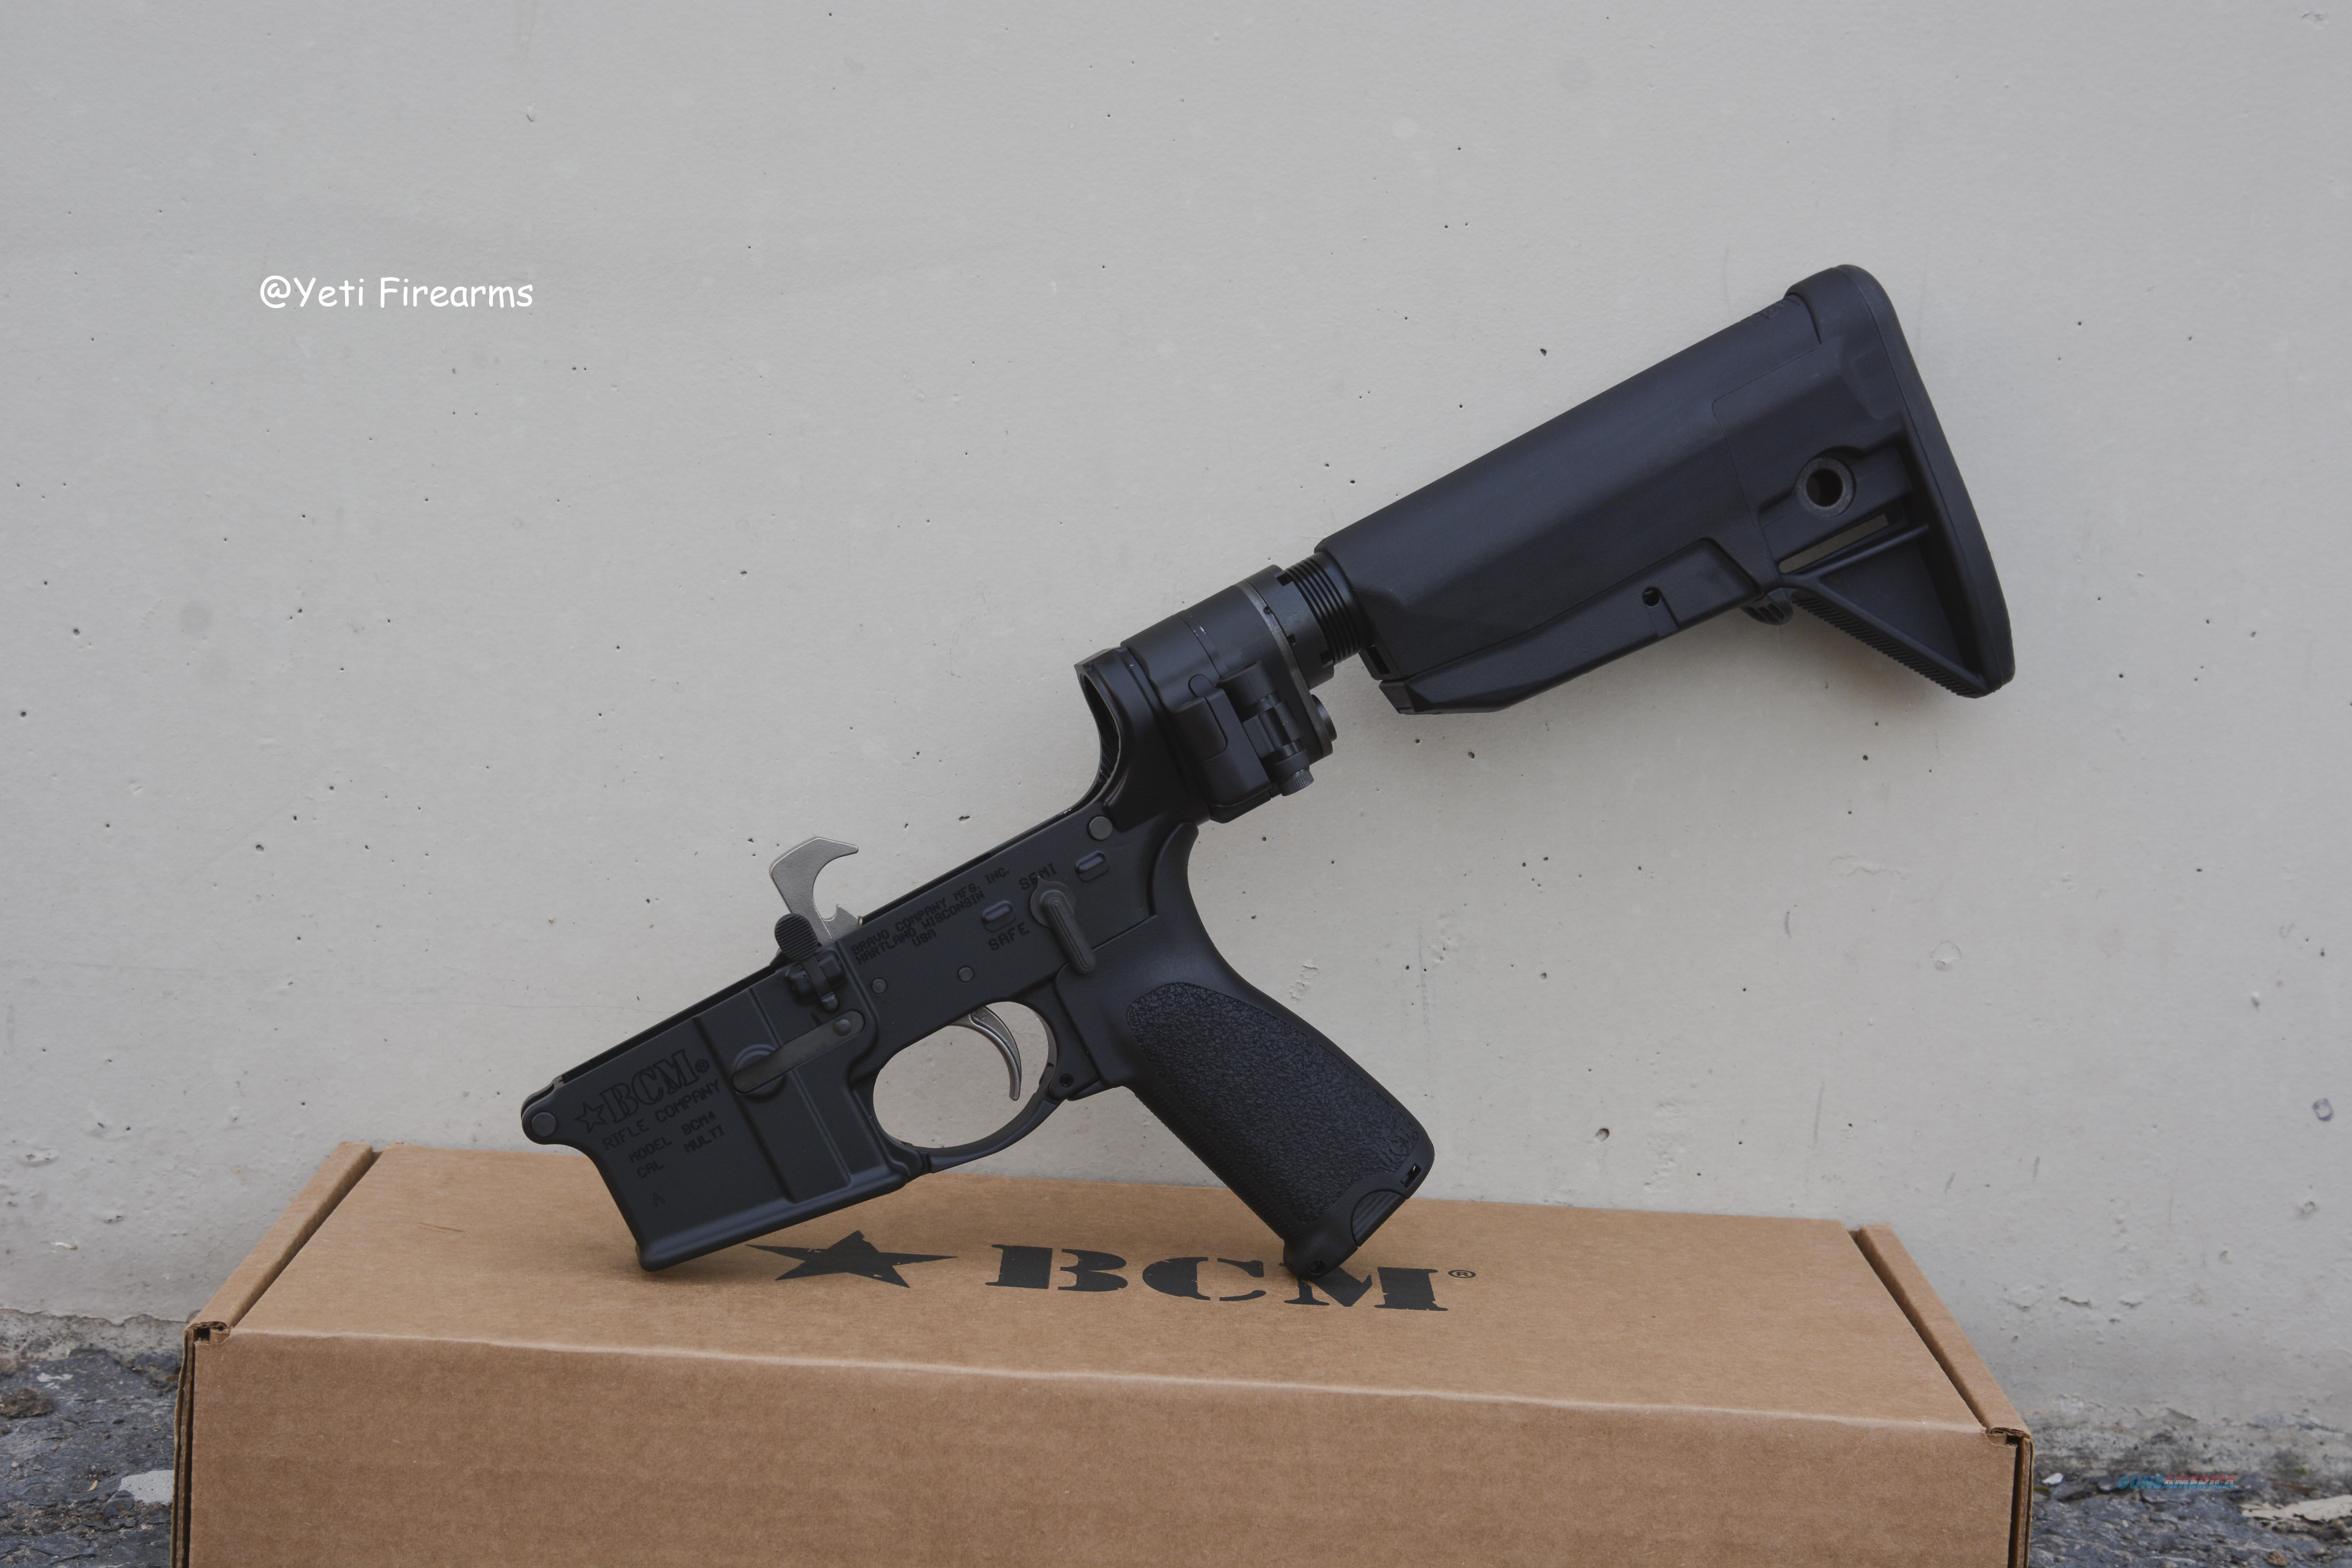 BCM Complete BCM4 AR-15 Lower Mod 0 Law Folder  Guns > Rifles > AR-15 Rifles - Small Manufacturers > Lower Only